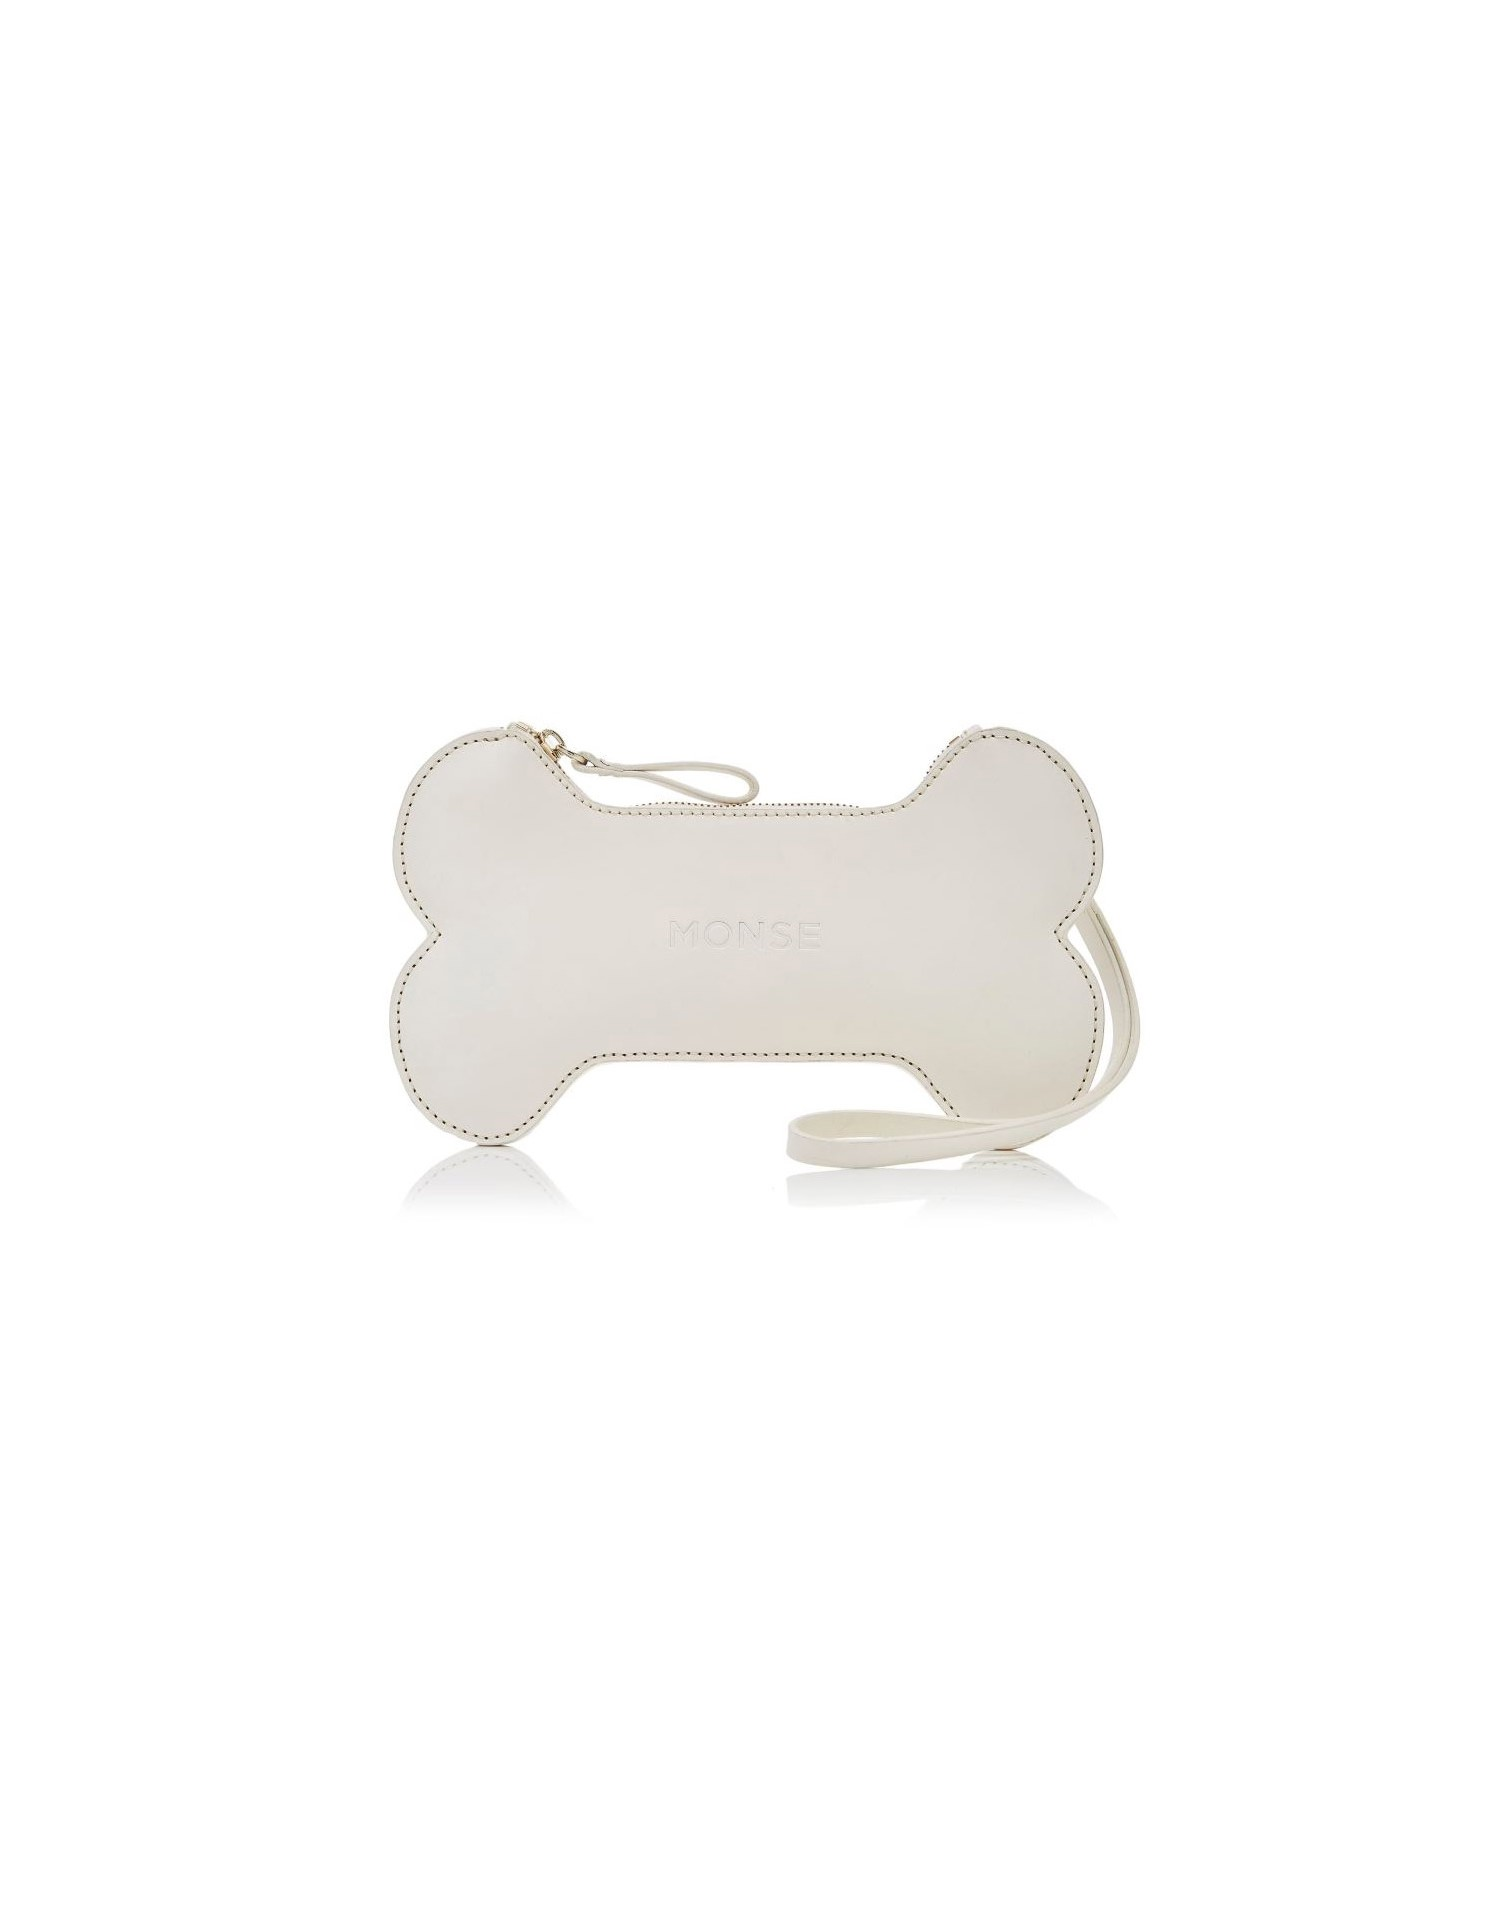 MONSE Bone Leather Clutch in White with Model